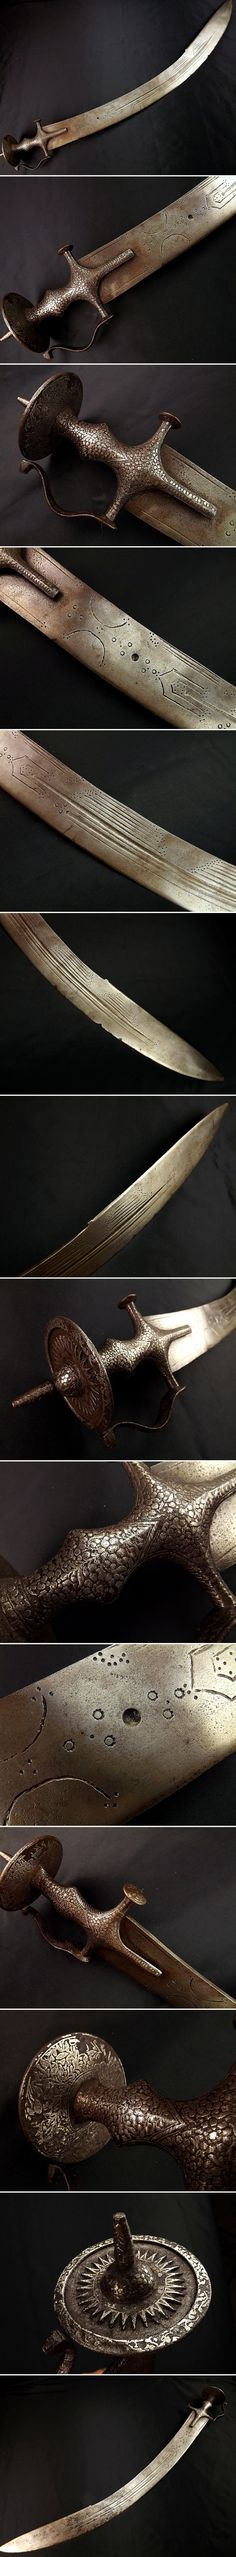 Indian tegha sword, 18th century, large and massive 36 inch sword with a 32.5 inch blade, 2.5 inch wide, silver koftgari tulwar hilt.